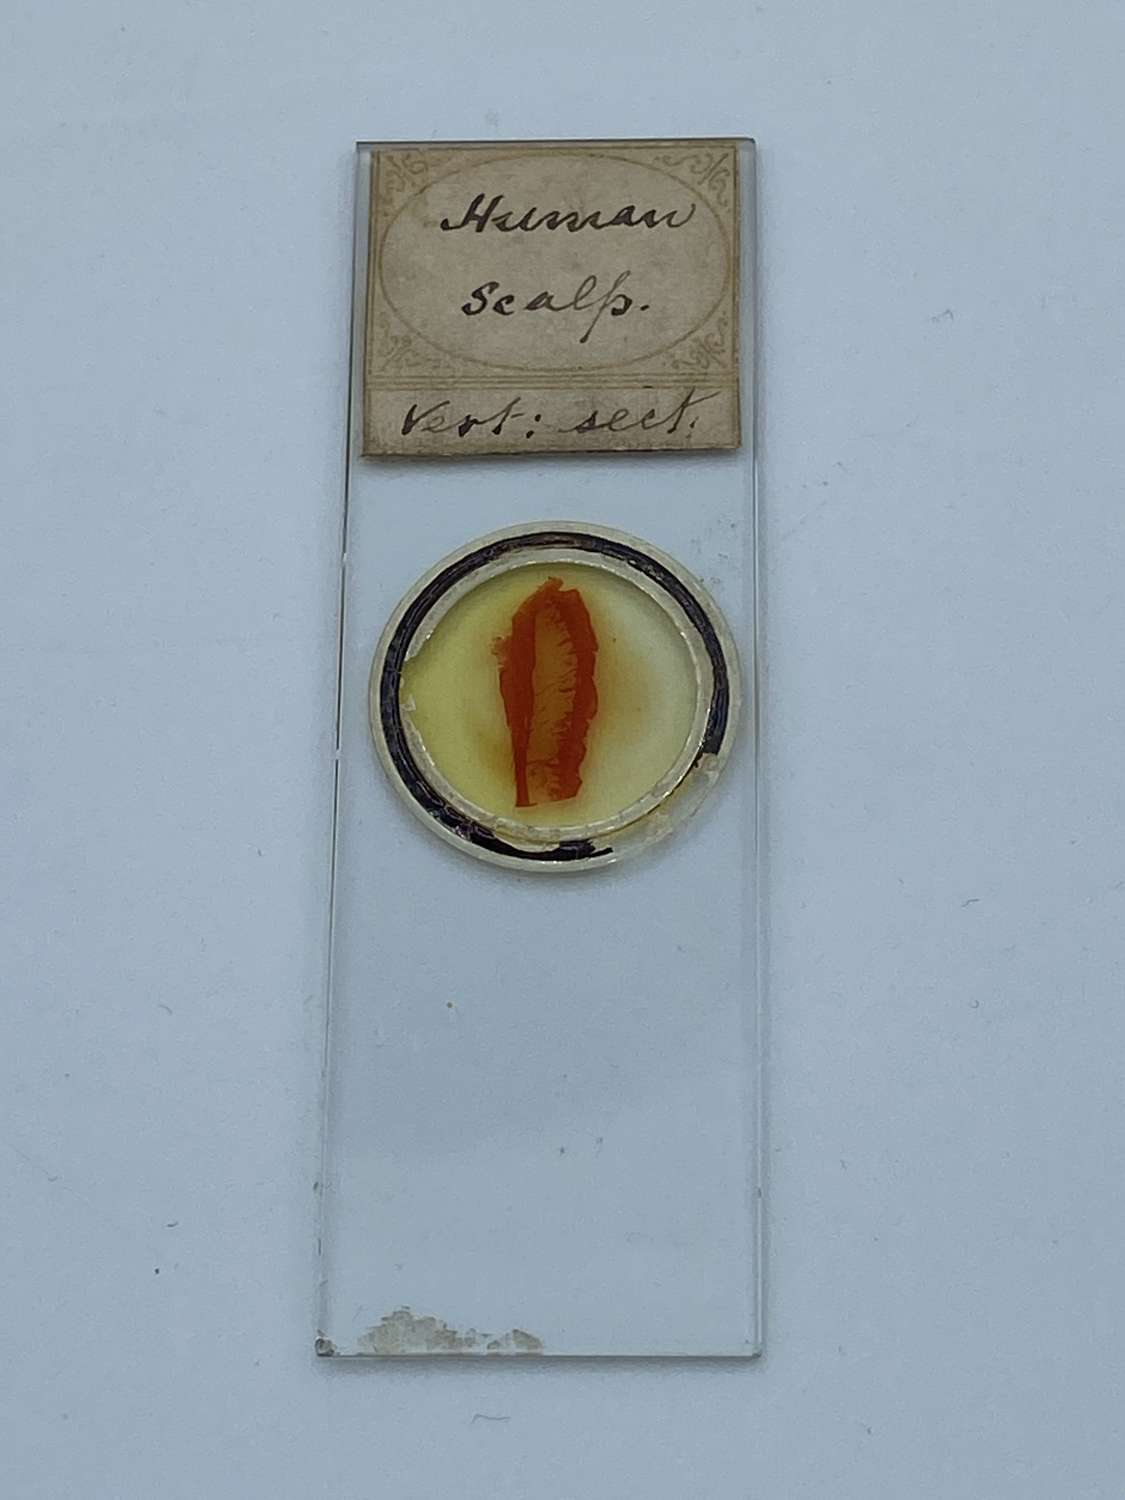 Antique Microscope Slide Human Section Scalp Vertical Section